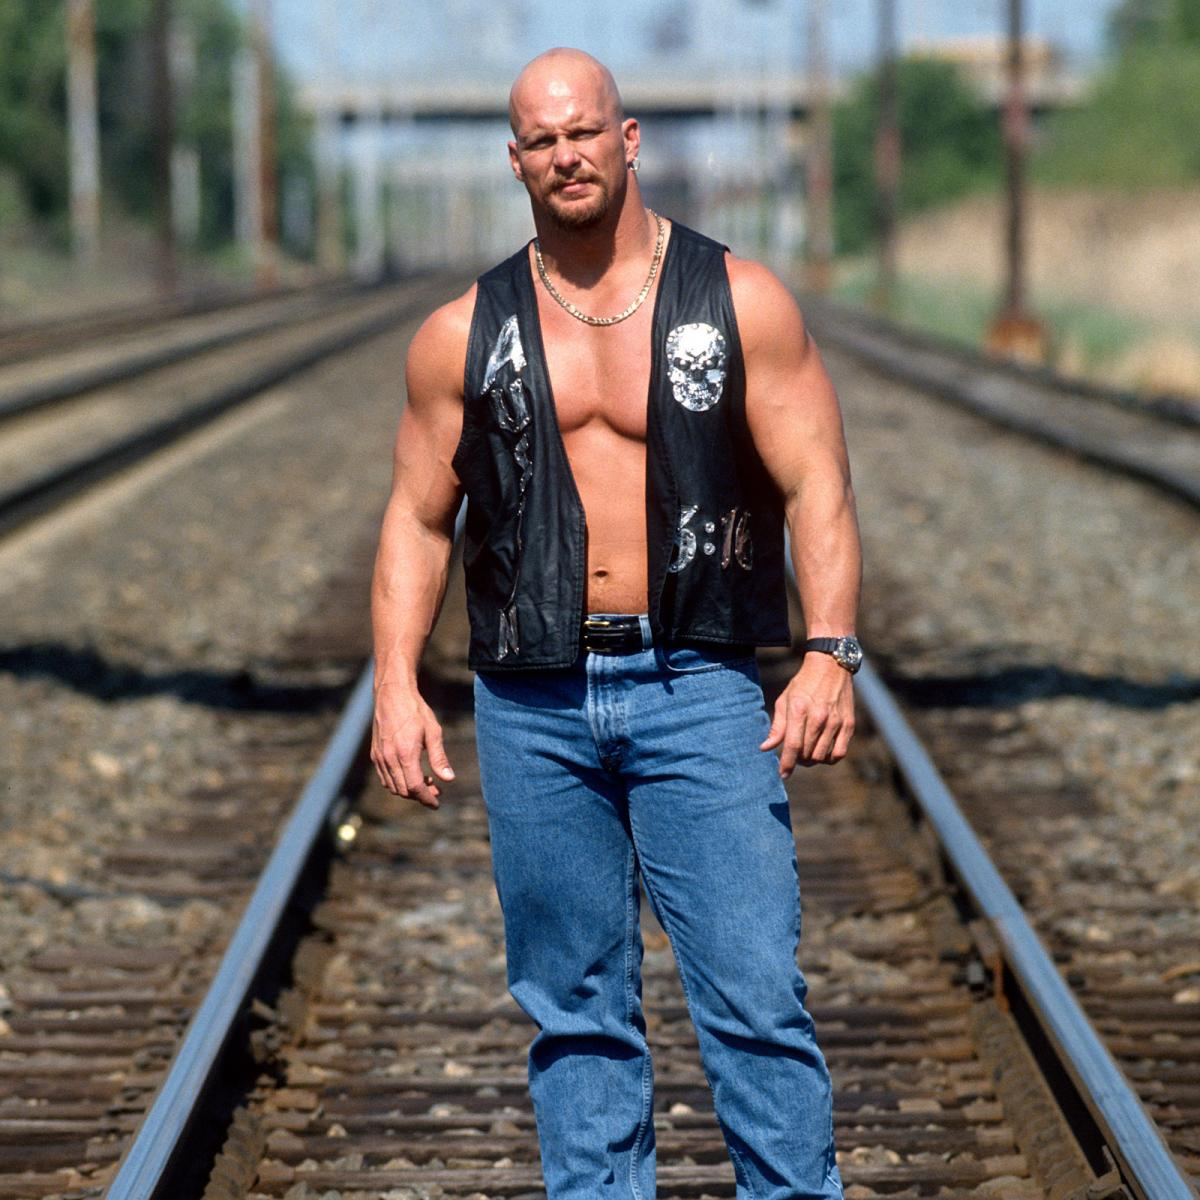 where did stone cold steve austin disappear after retirement